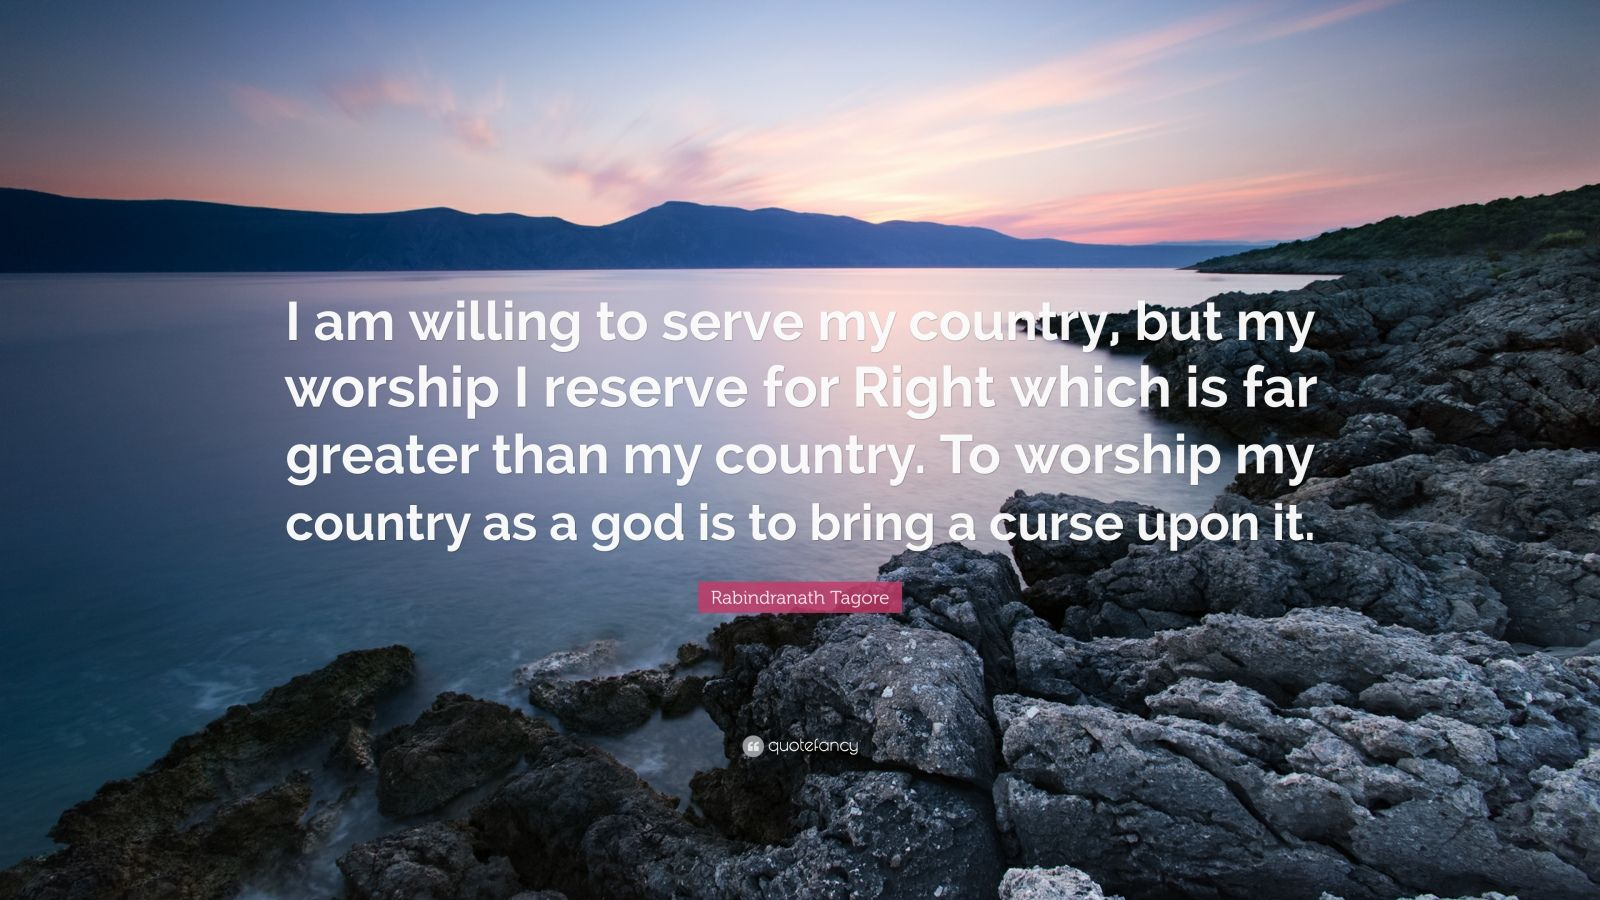 "Rabindranath Tagore Quote: ""I am willing to serve my country, but my worship I reserve for Right which is far greater than my country. To worship my country as a god is to bring a curse upon it."""